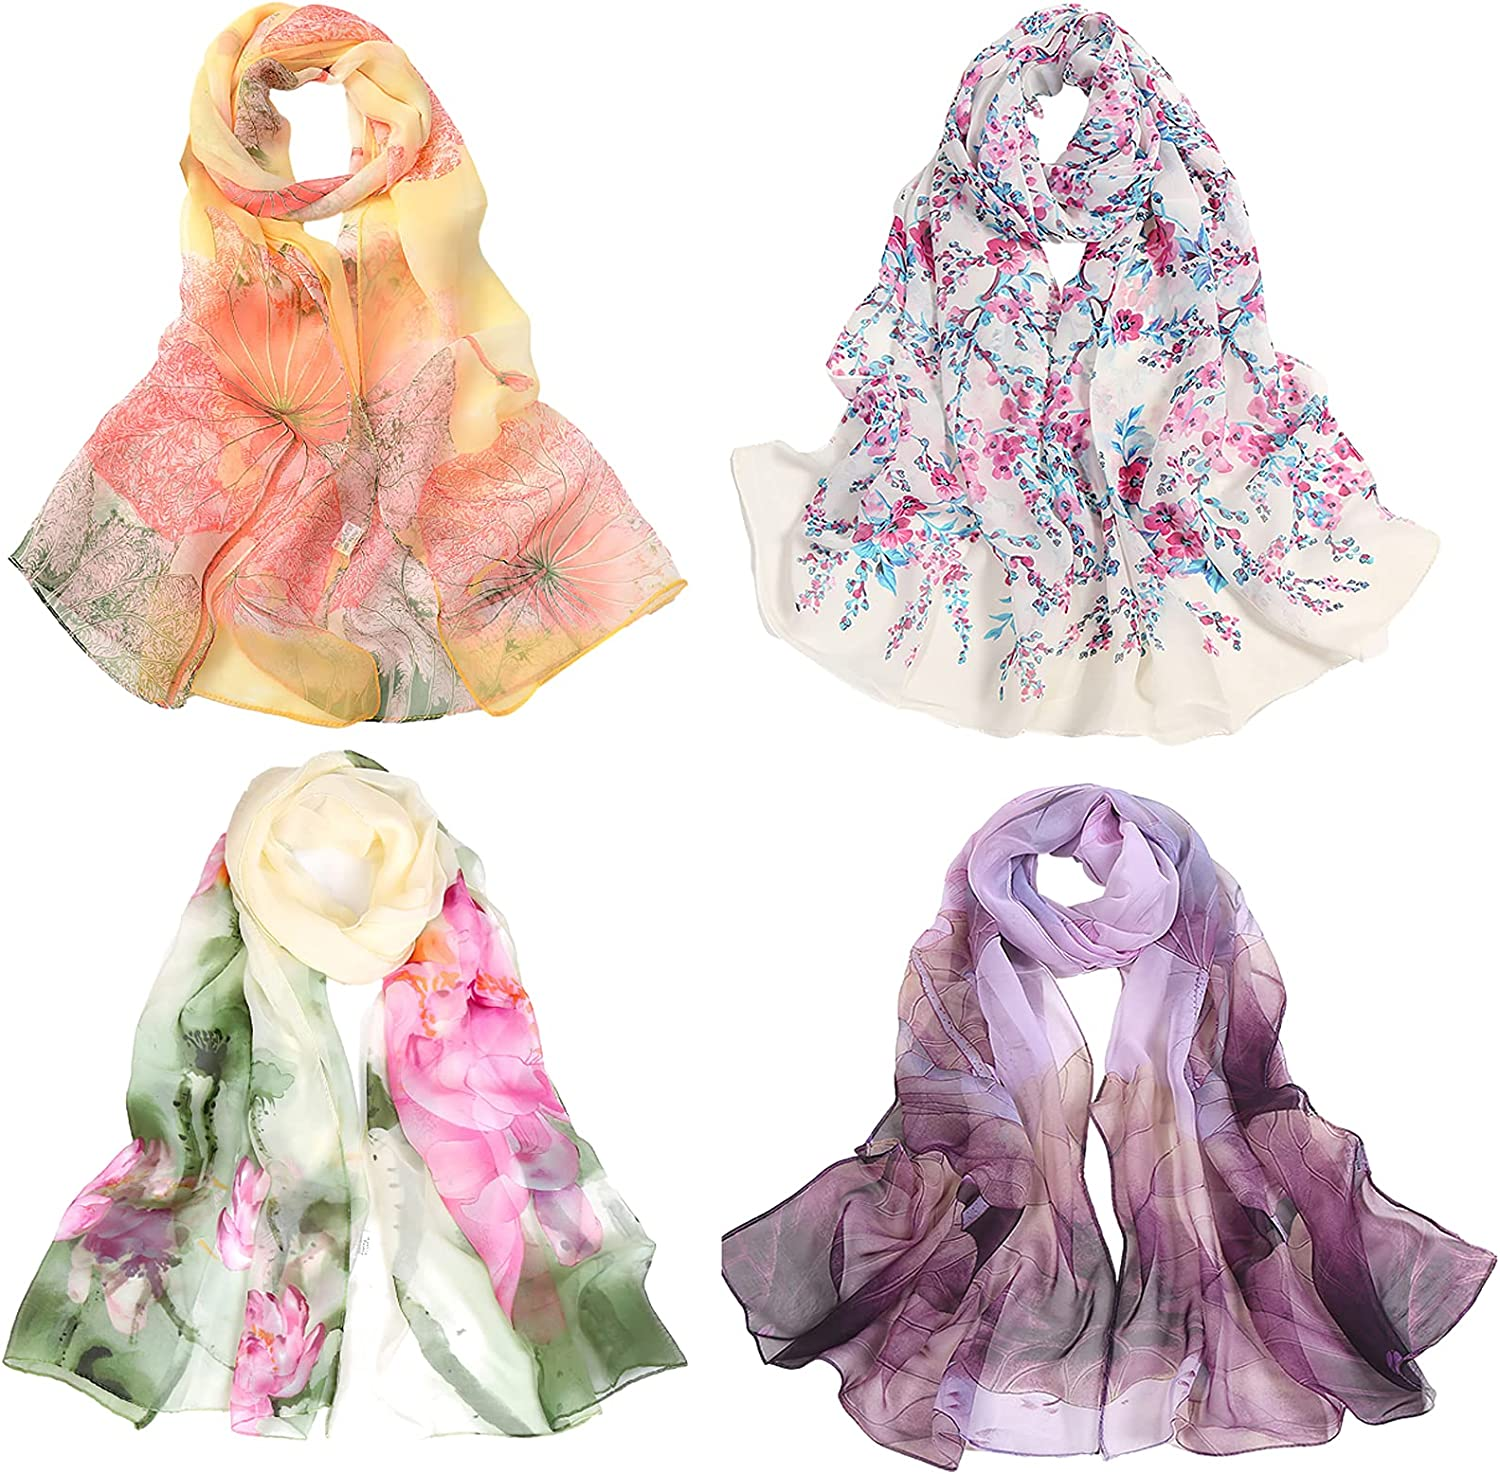 Pack of 4 Chiffon Floral Scarf for Women Fashion Shawls Wraps Lightweight Large Neck Scarves